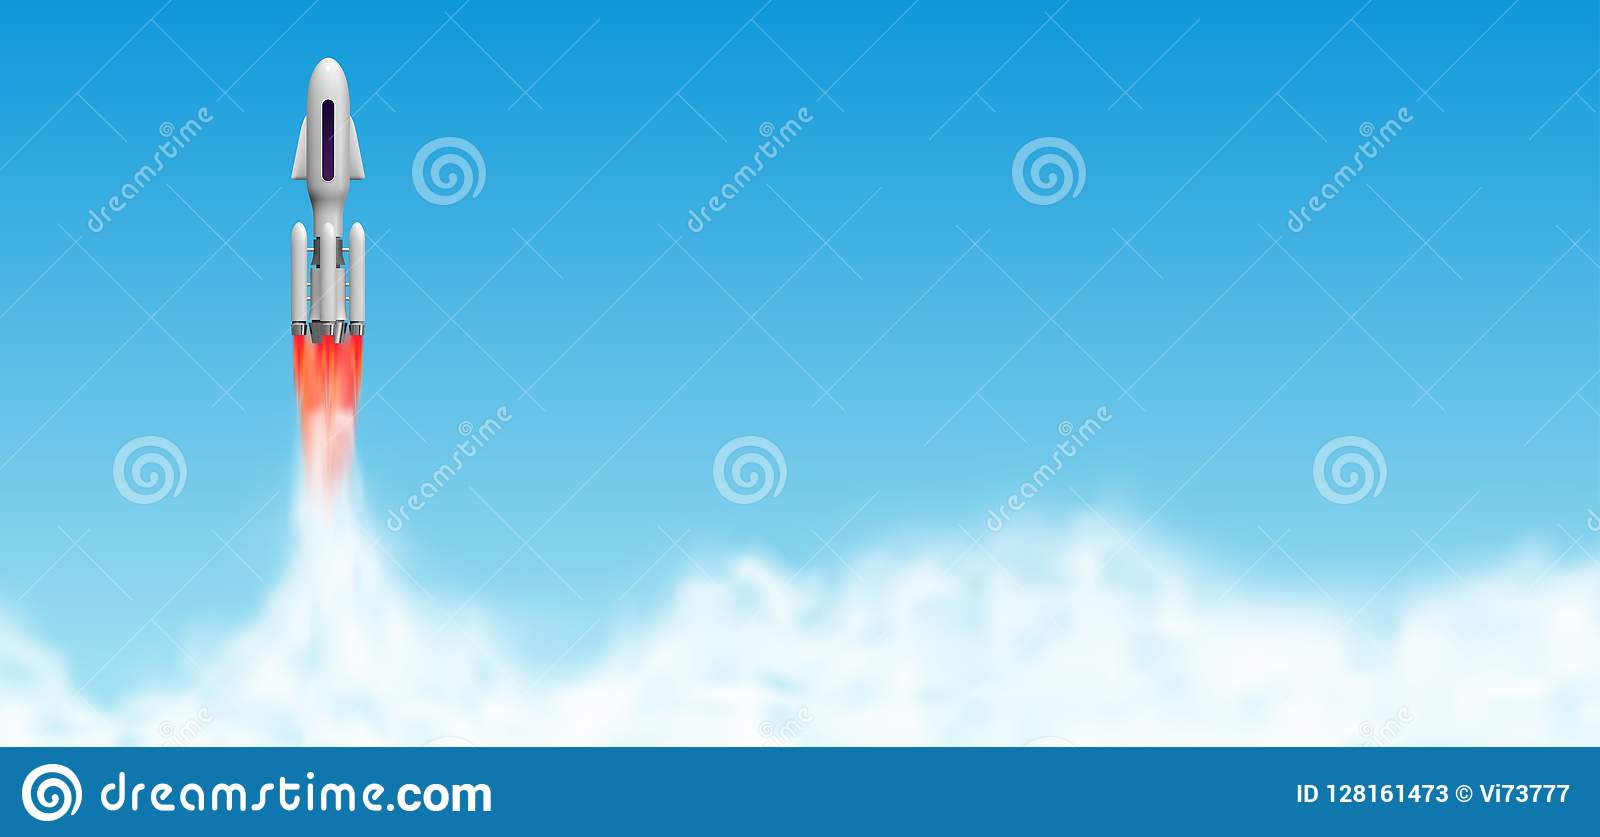 Rocket launch, spaceship start with steam clouds. Shuttle vector illustration with copy space.